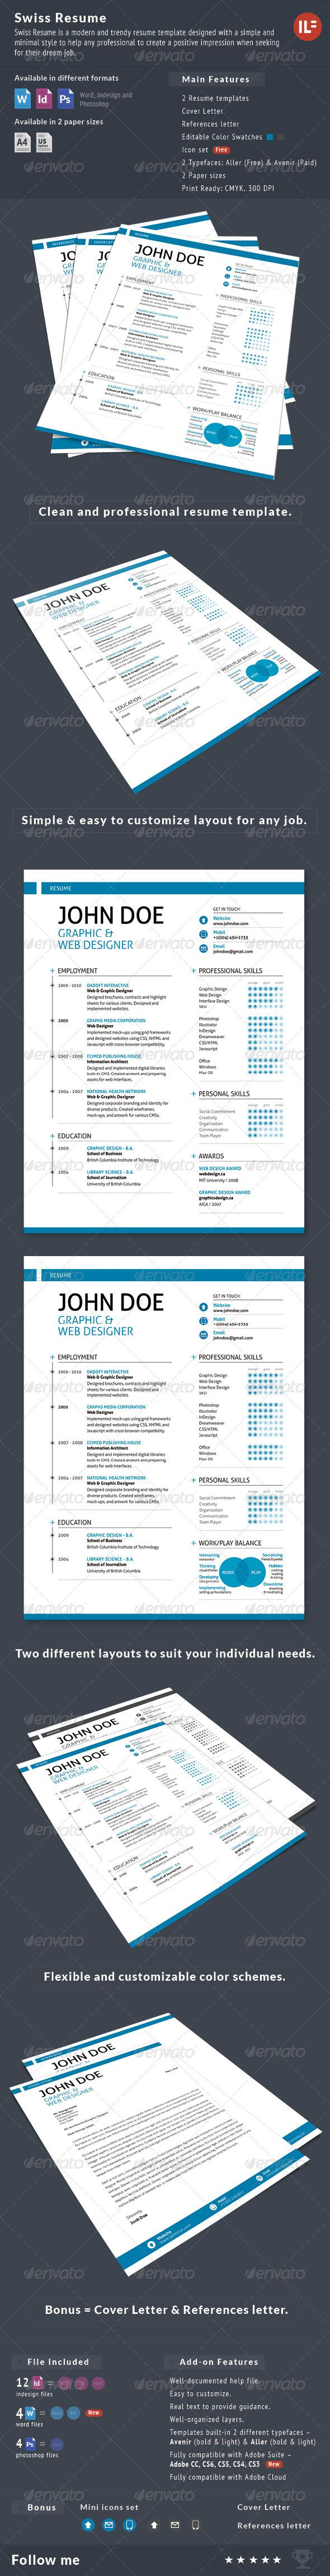 Pretty 100 Free Printable Resume Builder Tall 12 Column Grid Template Round 15 Year Old Resume Sample 16th Birthday Invitation Templates Young 2 Page Resume Format Free Download Gray2 Weeks Notice Templates 39 Best Images About Photoshop Resume Templates On Pinterest ..